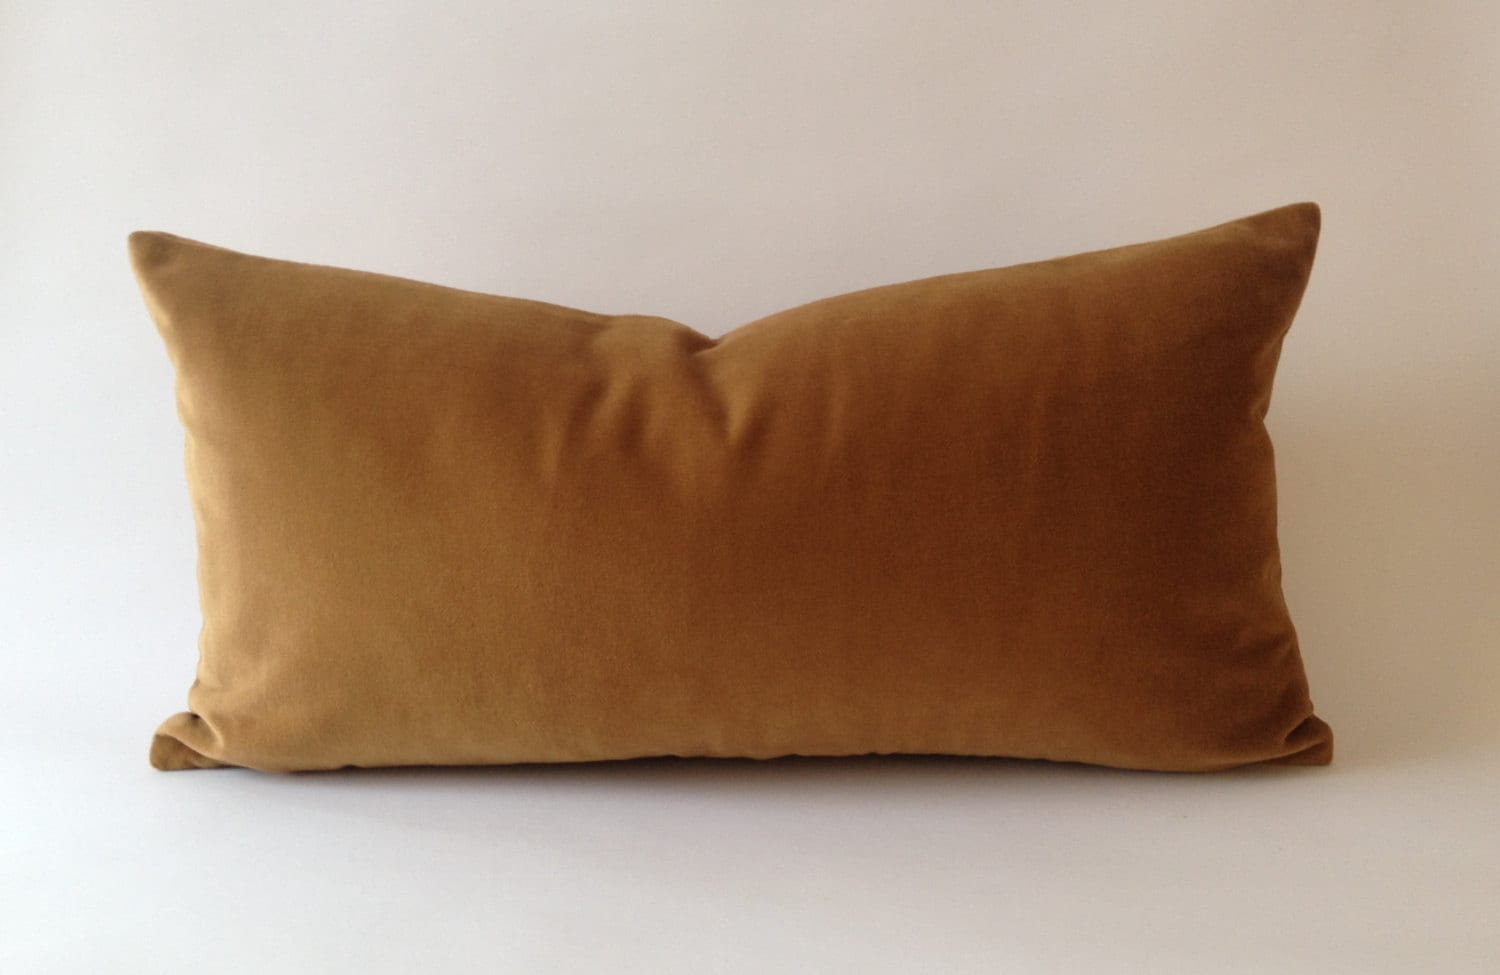 Decorative Bolster Pillow Covers : Camel Brown Decorative Bolster Pillow Cover Medium Weight